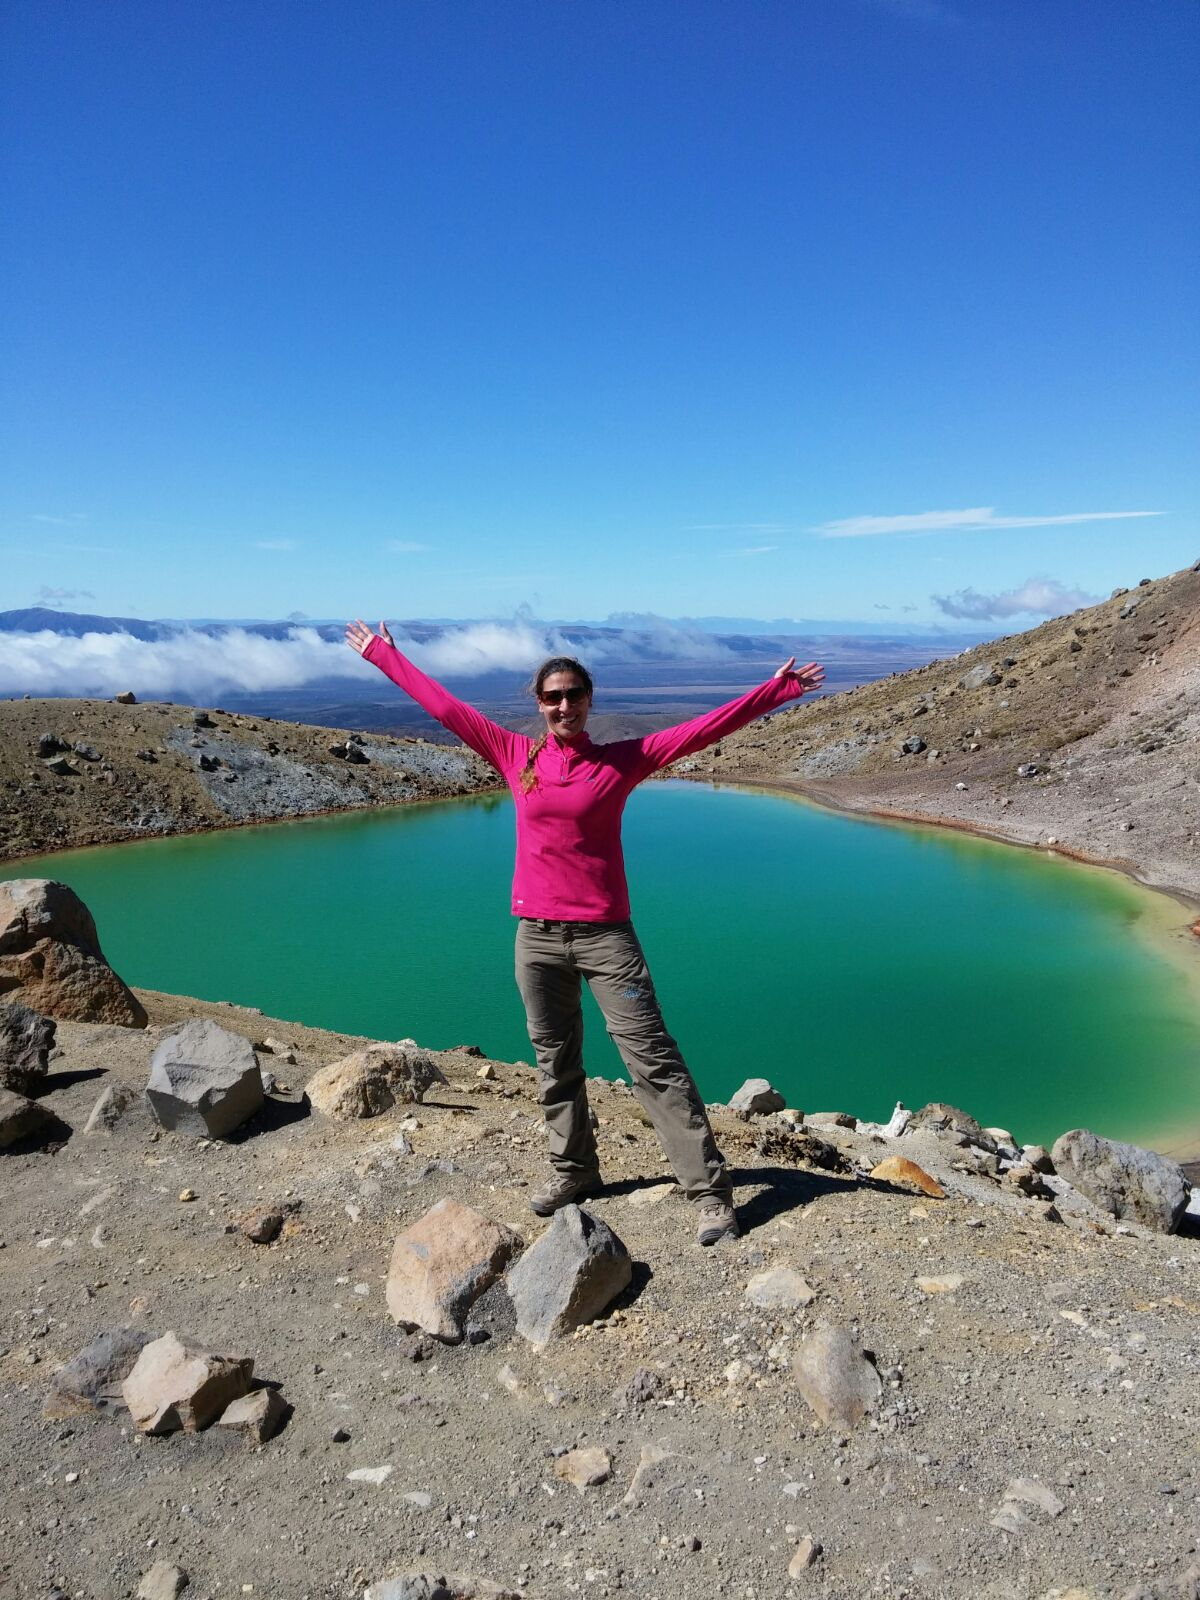 We are the heroes of our time, 1st time solo day-hike – Tongariro Crossing